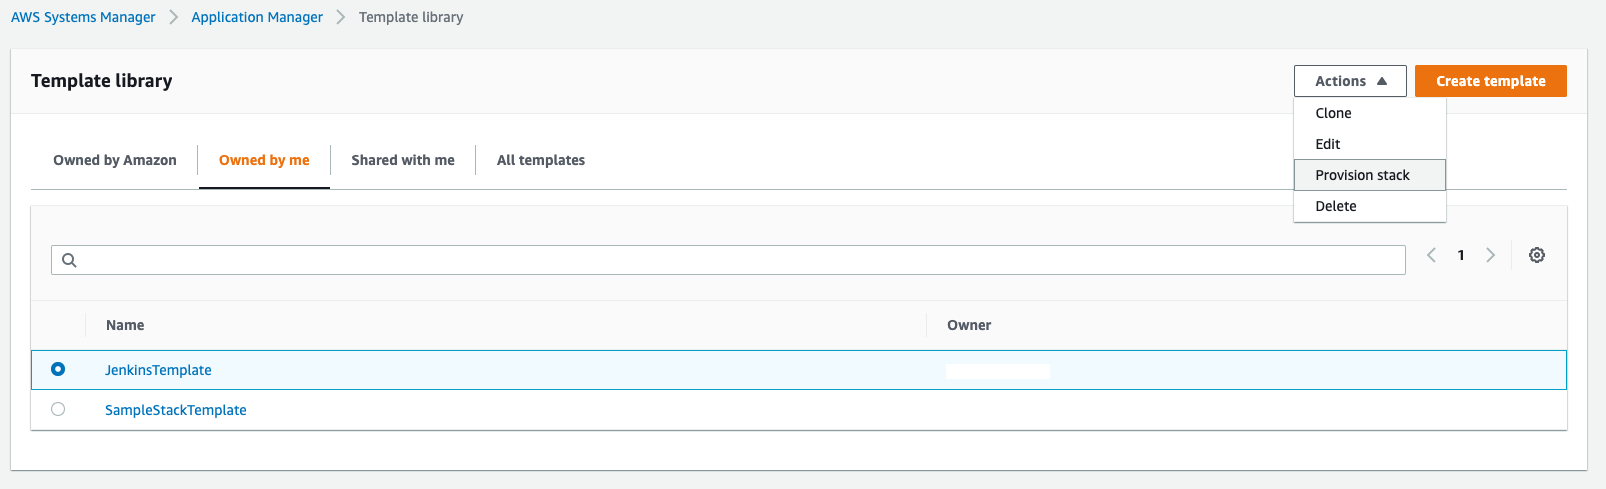 On the Template library page, the Owned by me tab is selected and Provision stack is highlighted in the Actions list. The JenkinsTemplate is selected.